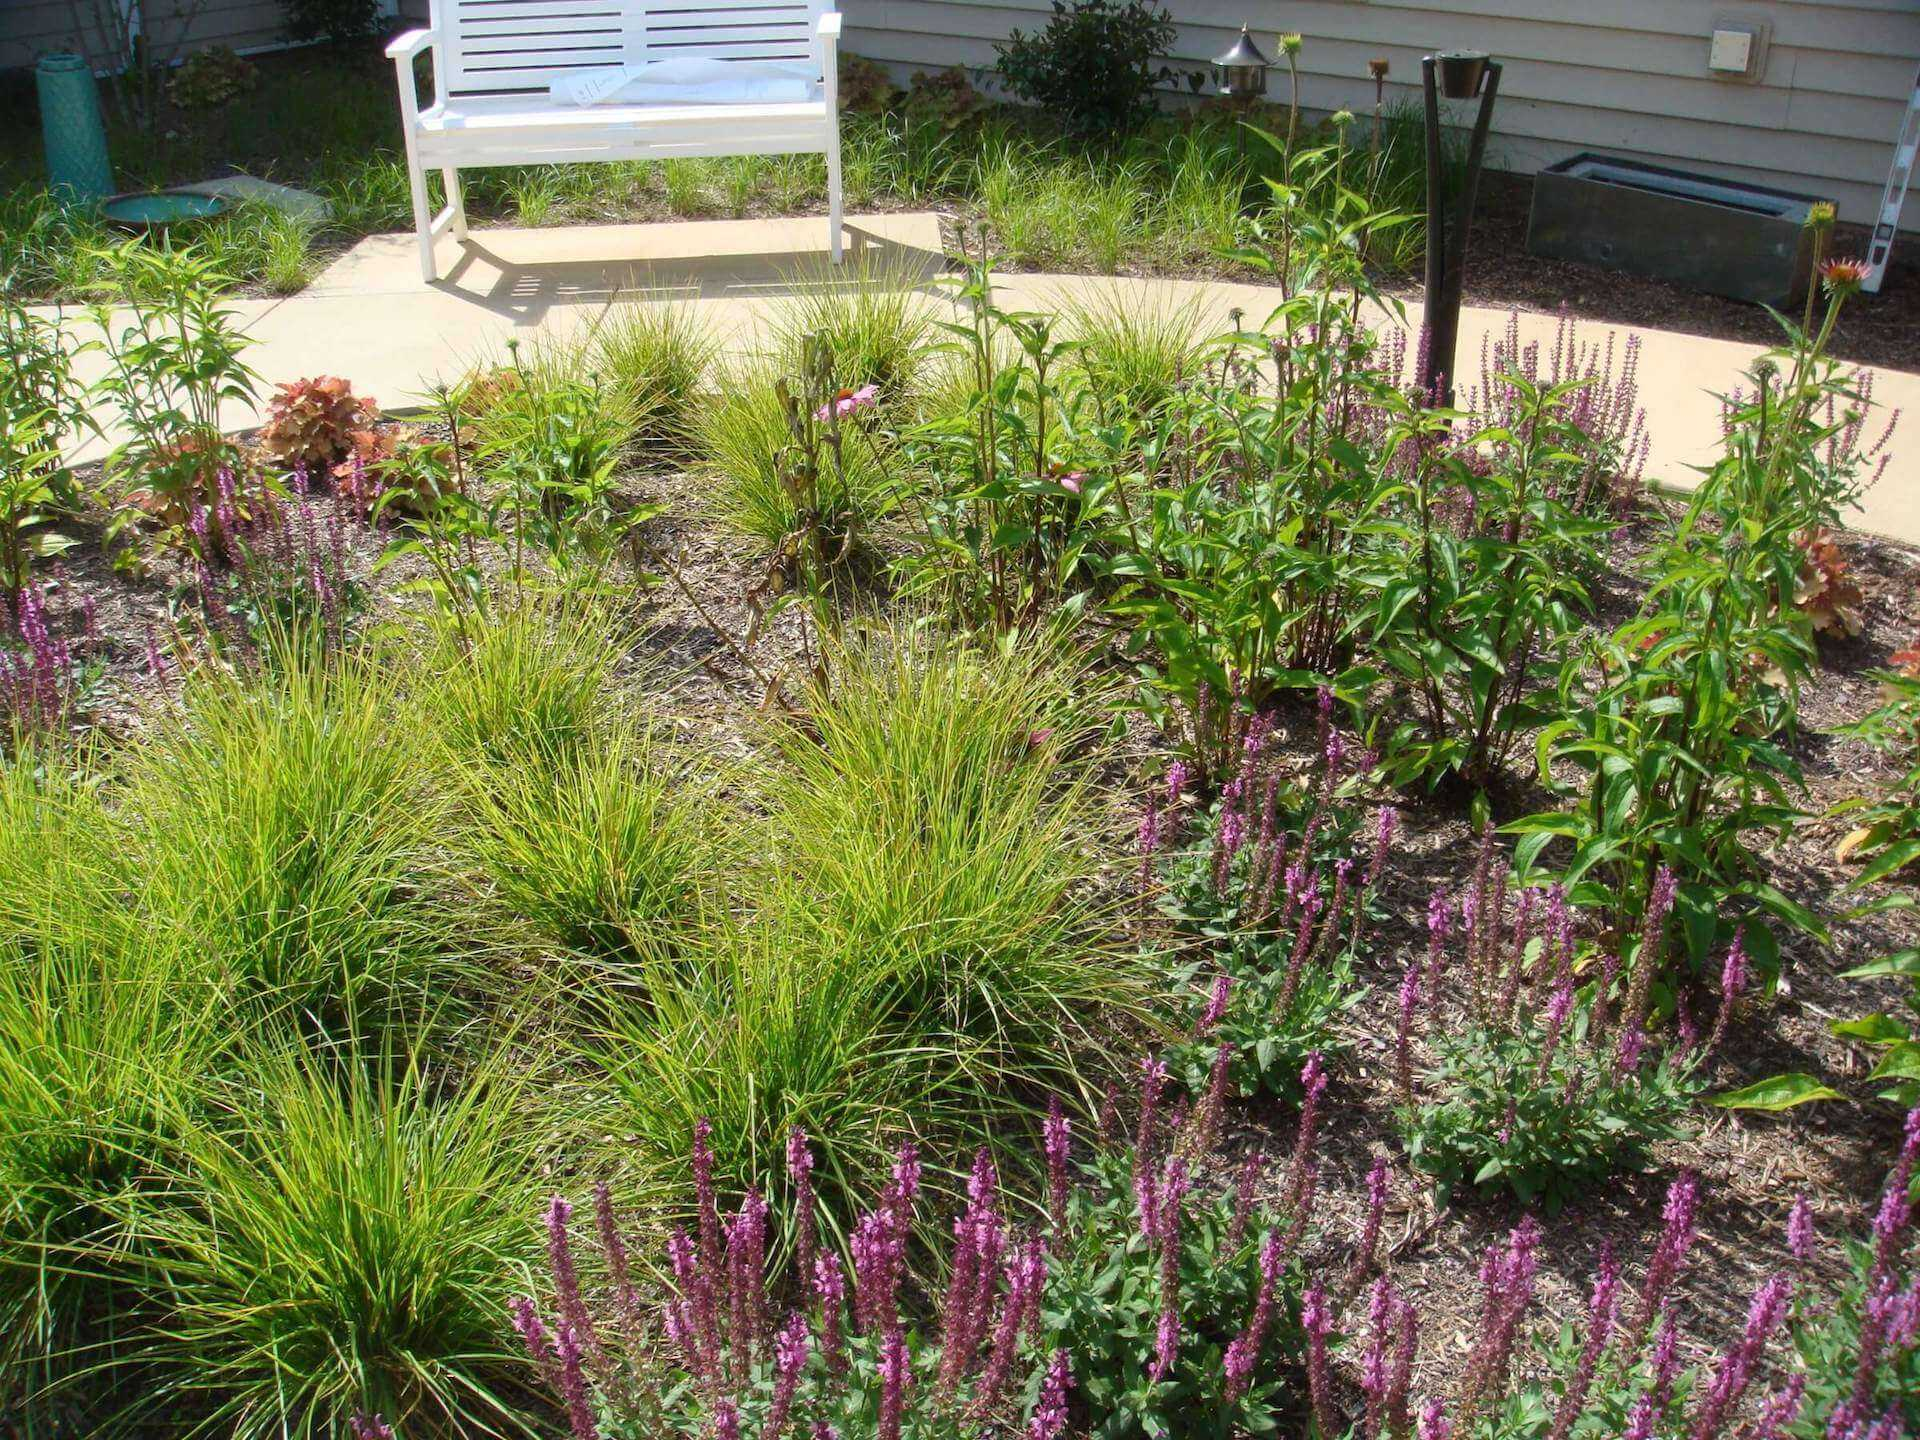 flowerbed in the midst of the landscaping